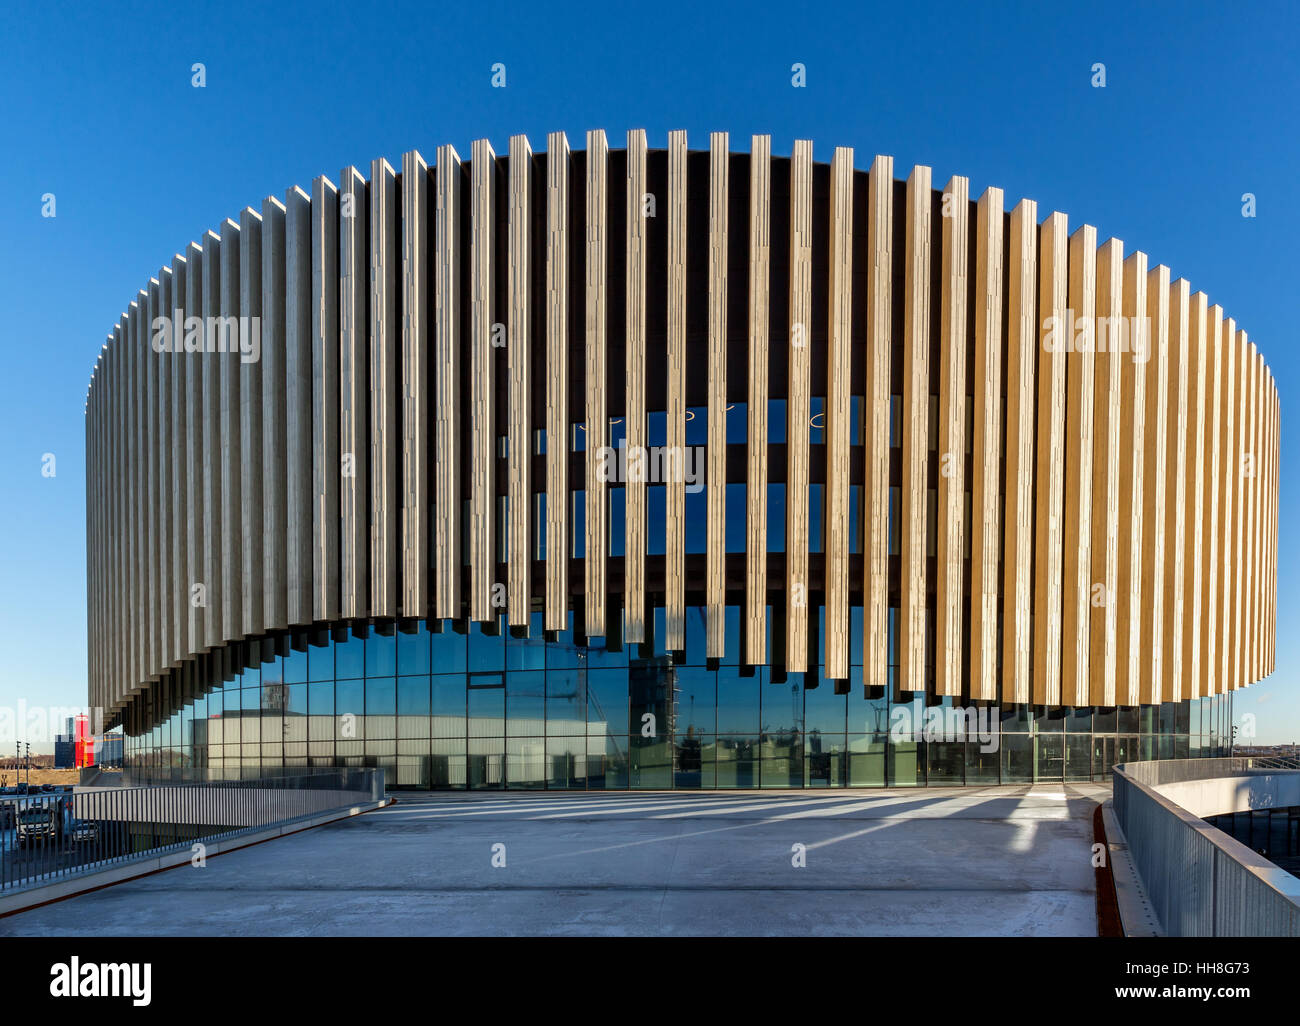 Royal Arena, an multi-use indoor arena, Copenhagen, Denmark - Stock Image